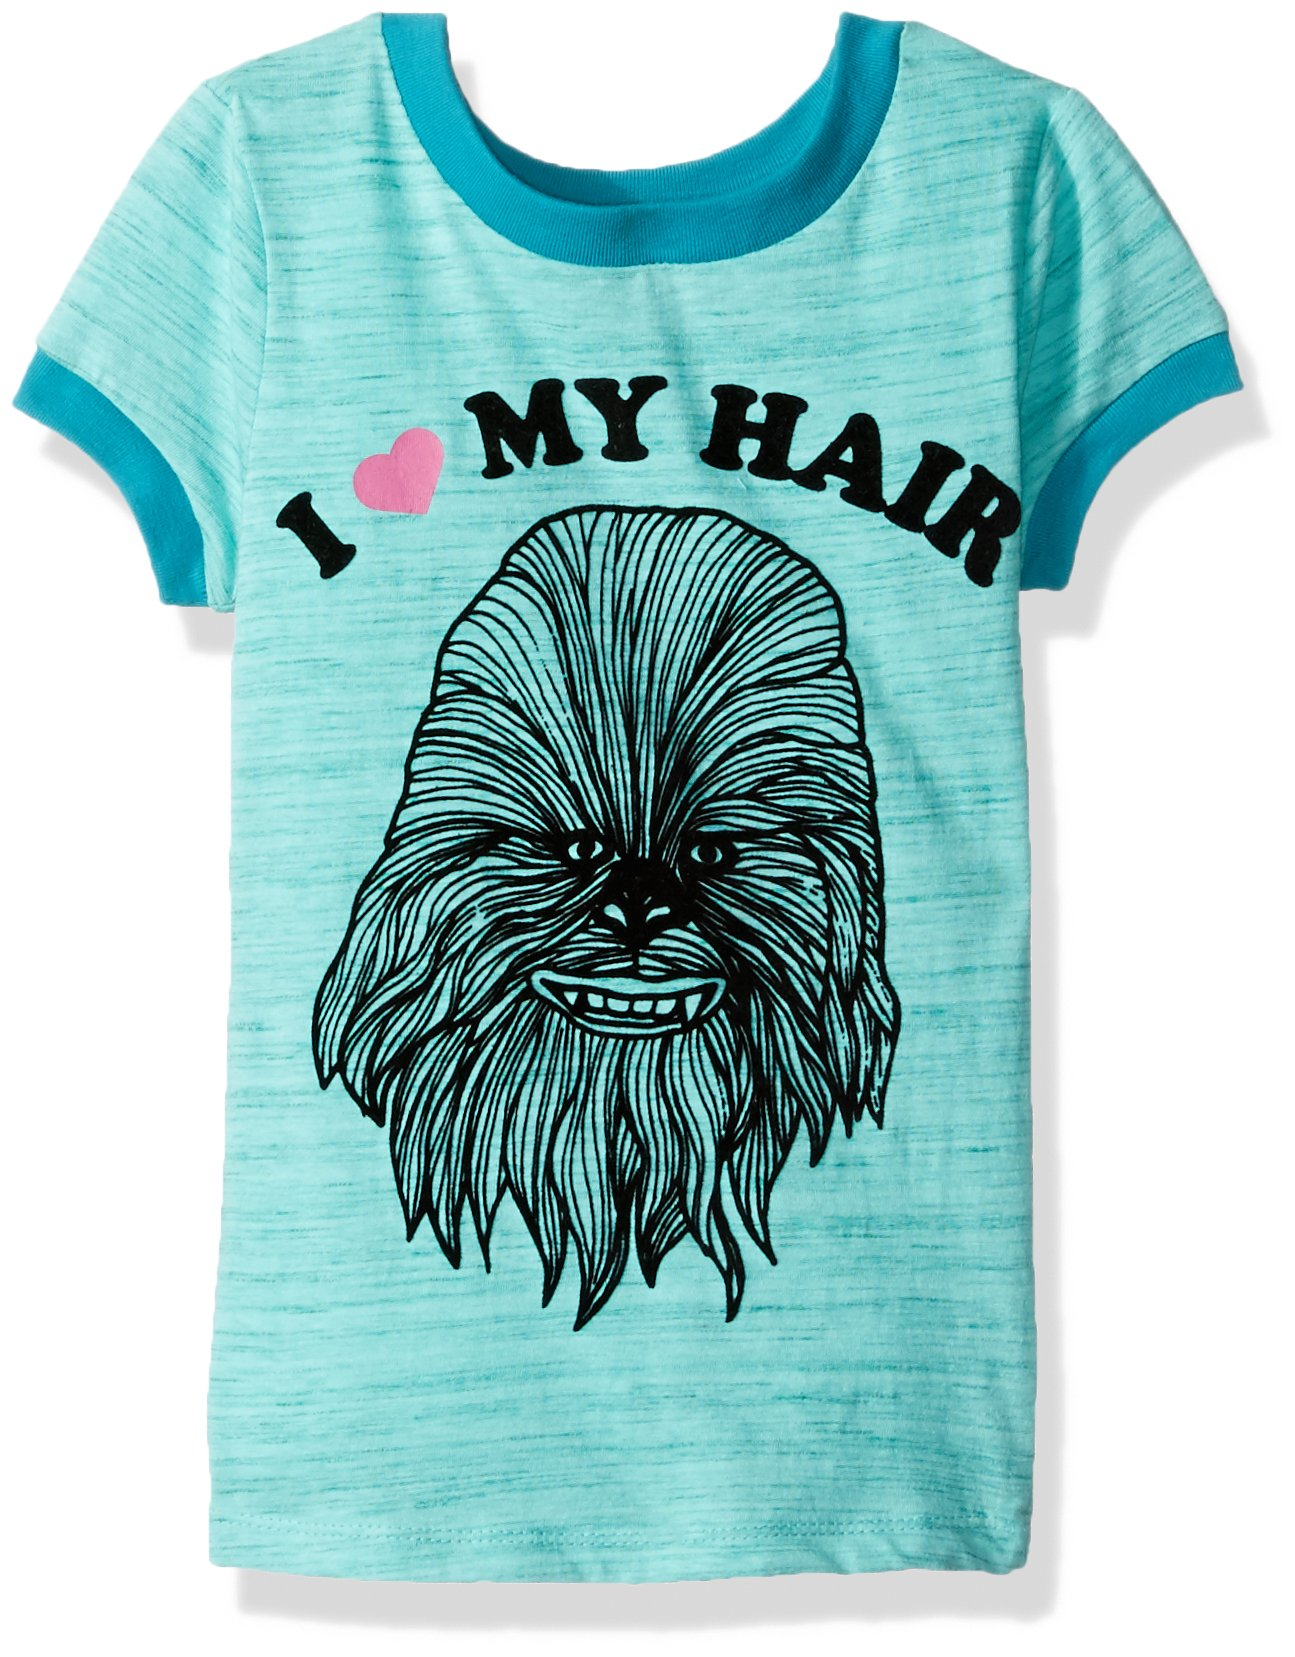 Star Wars Girls' Chewbacca I Love My Hair T-Shirt, Jade, L 10/12